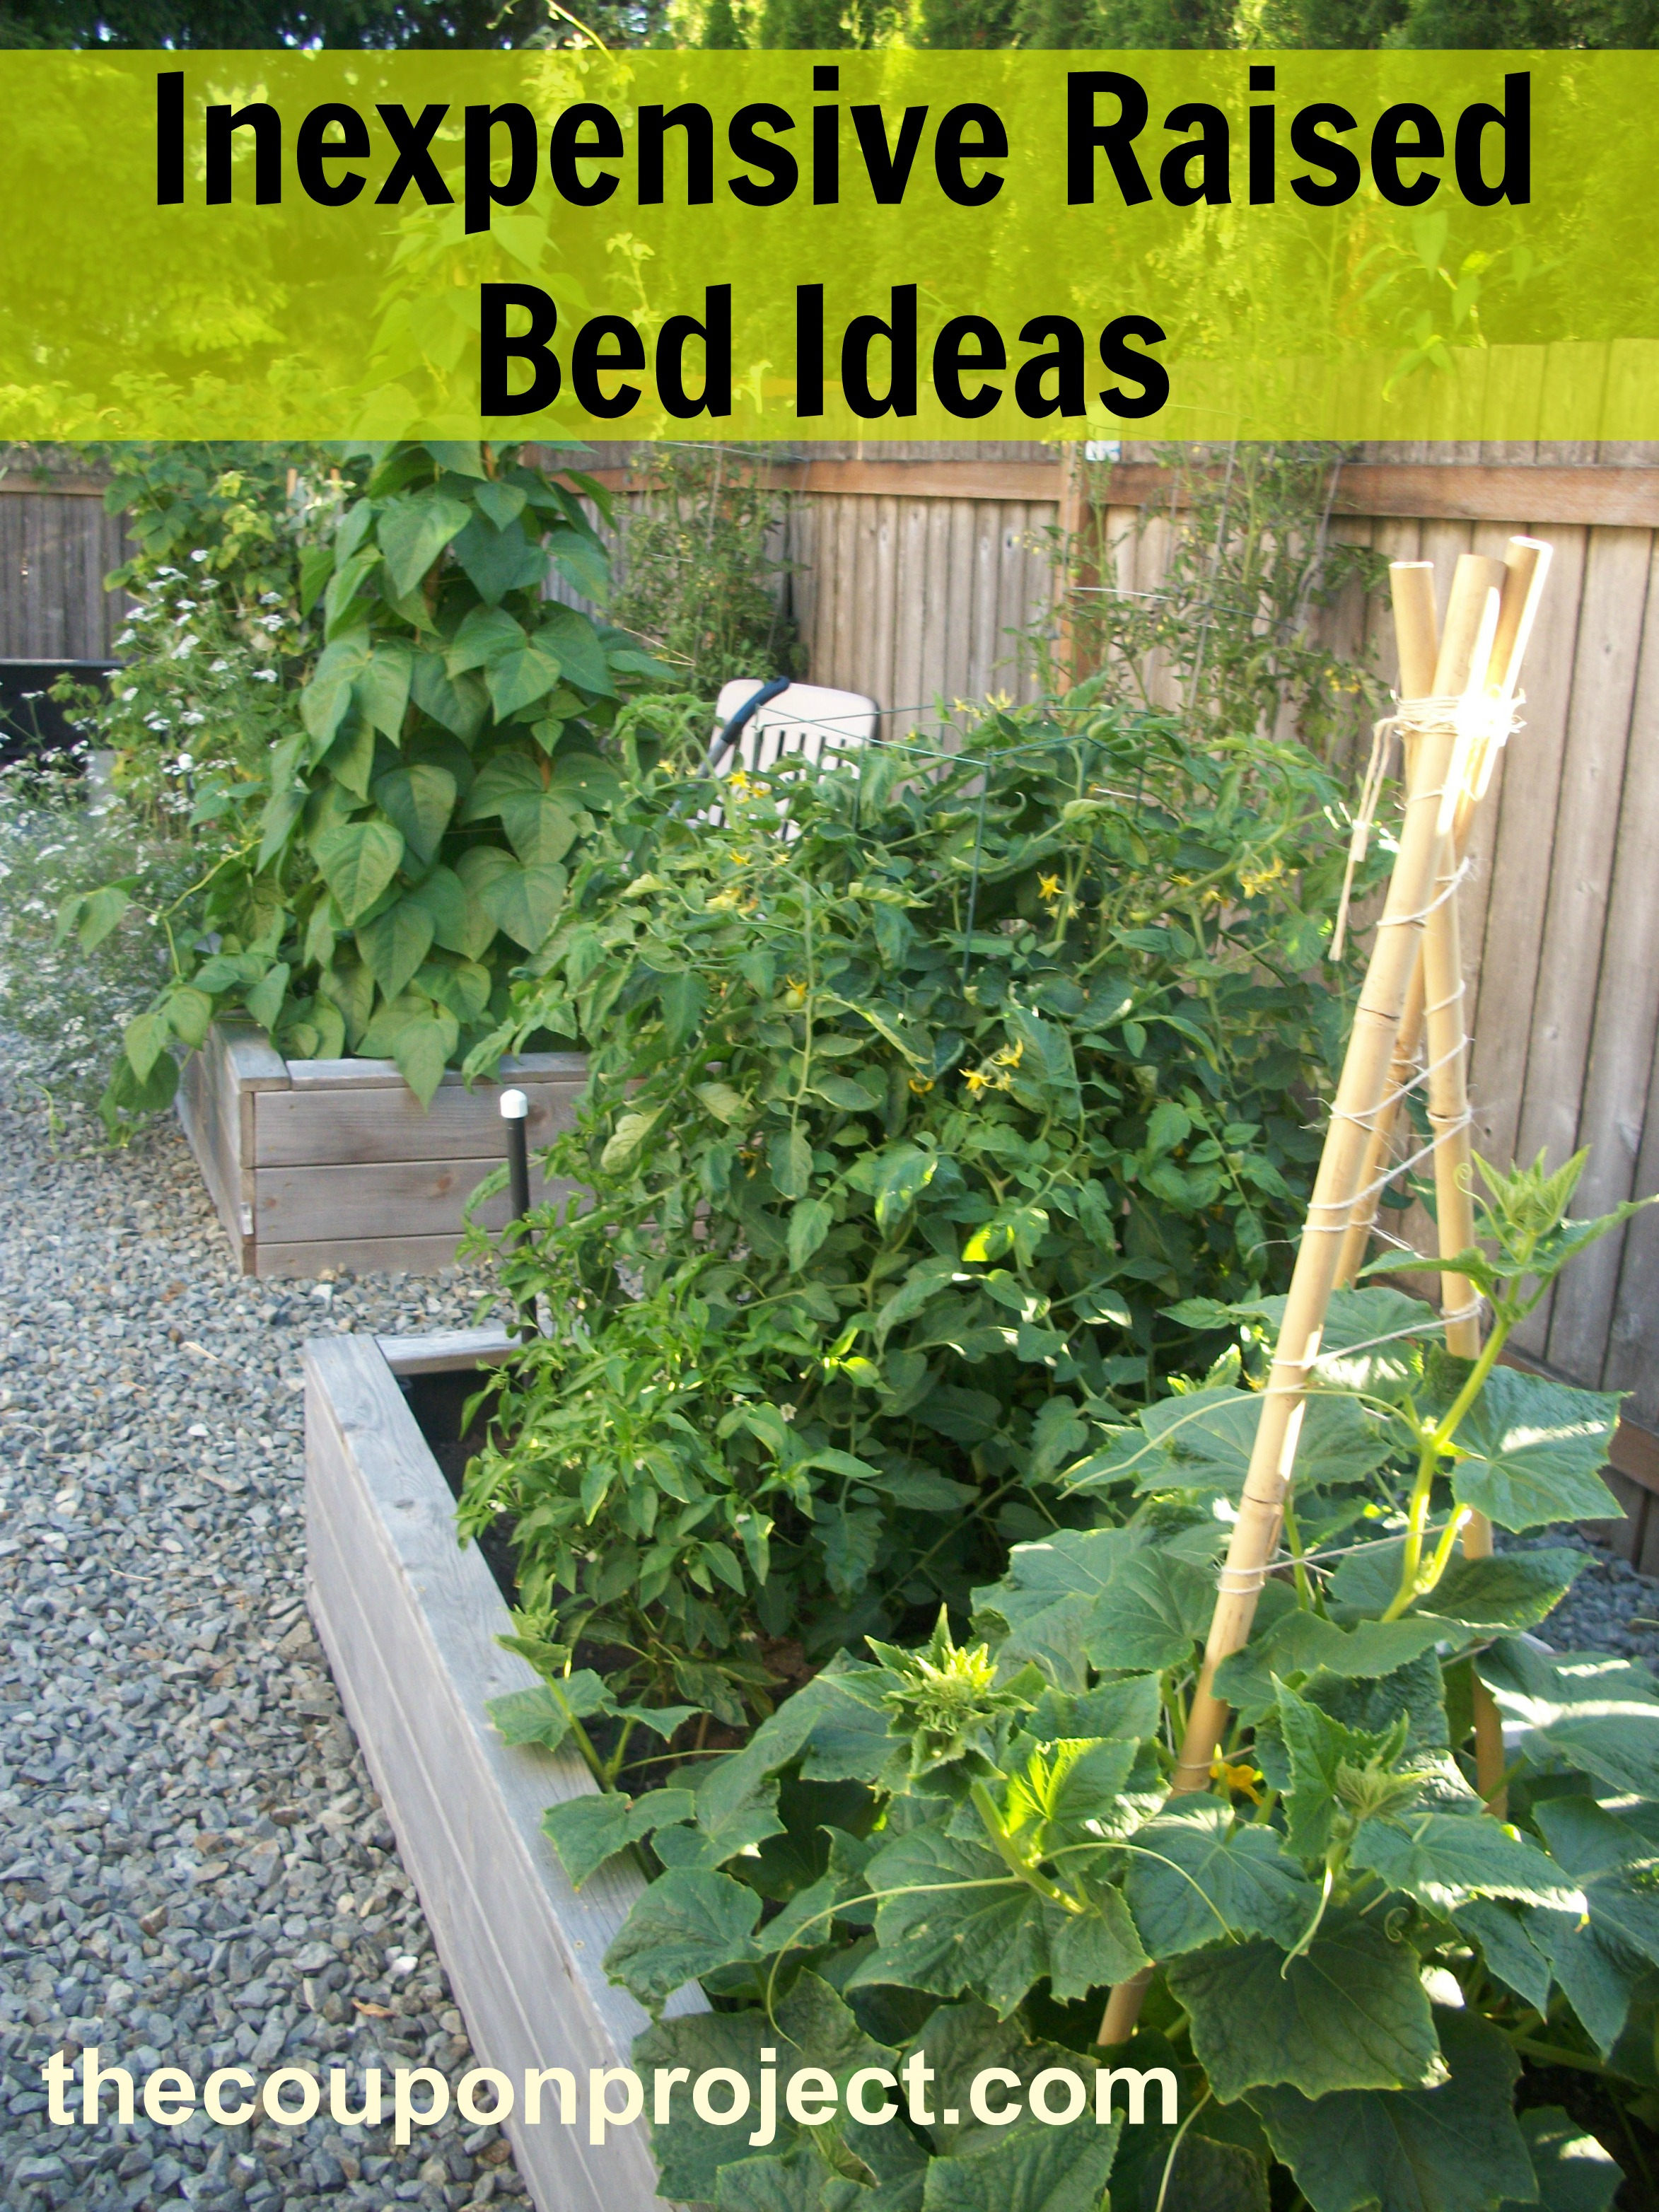 Designing A Vegetable Garden With Raised Beds 700_raised garden bed rabbit fence jpeg How To Make Inexpensive Raised Beds Four Different Ideas